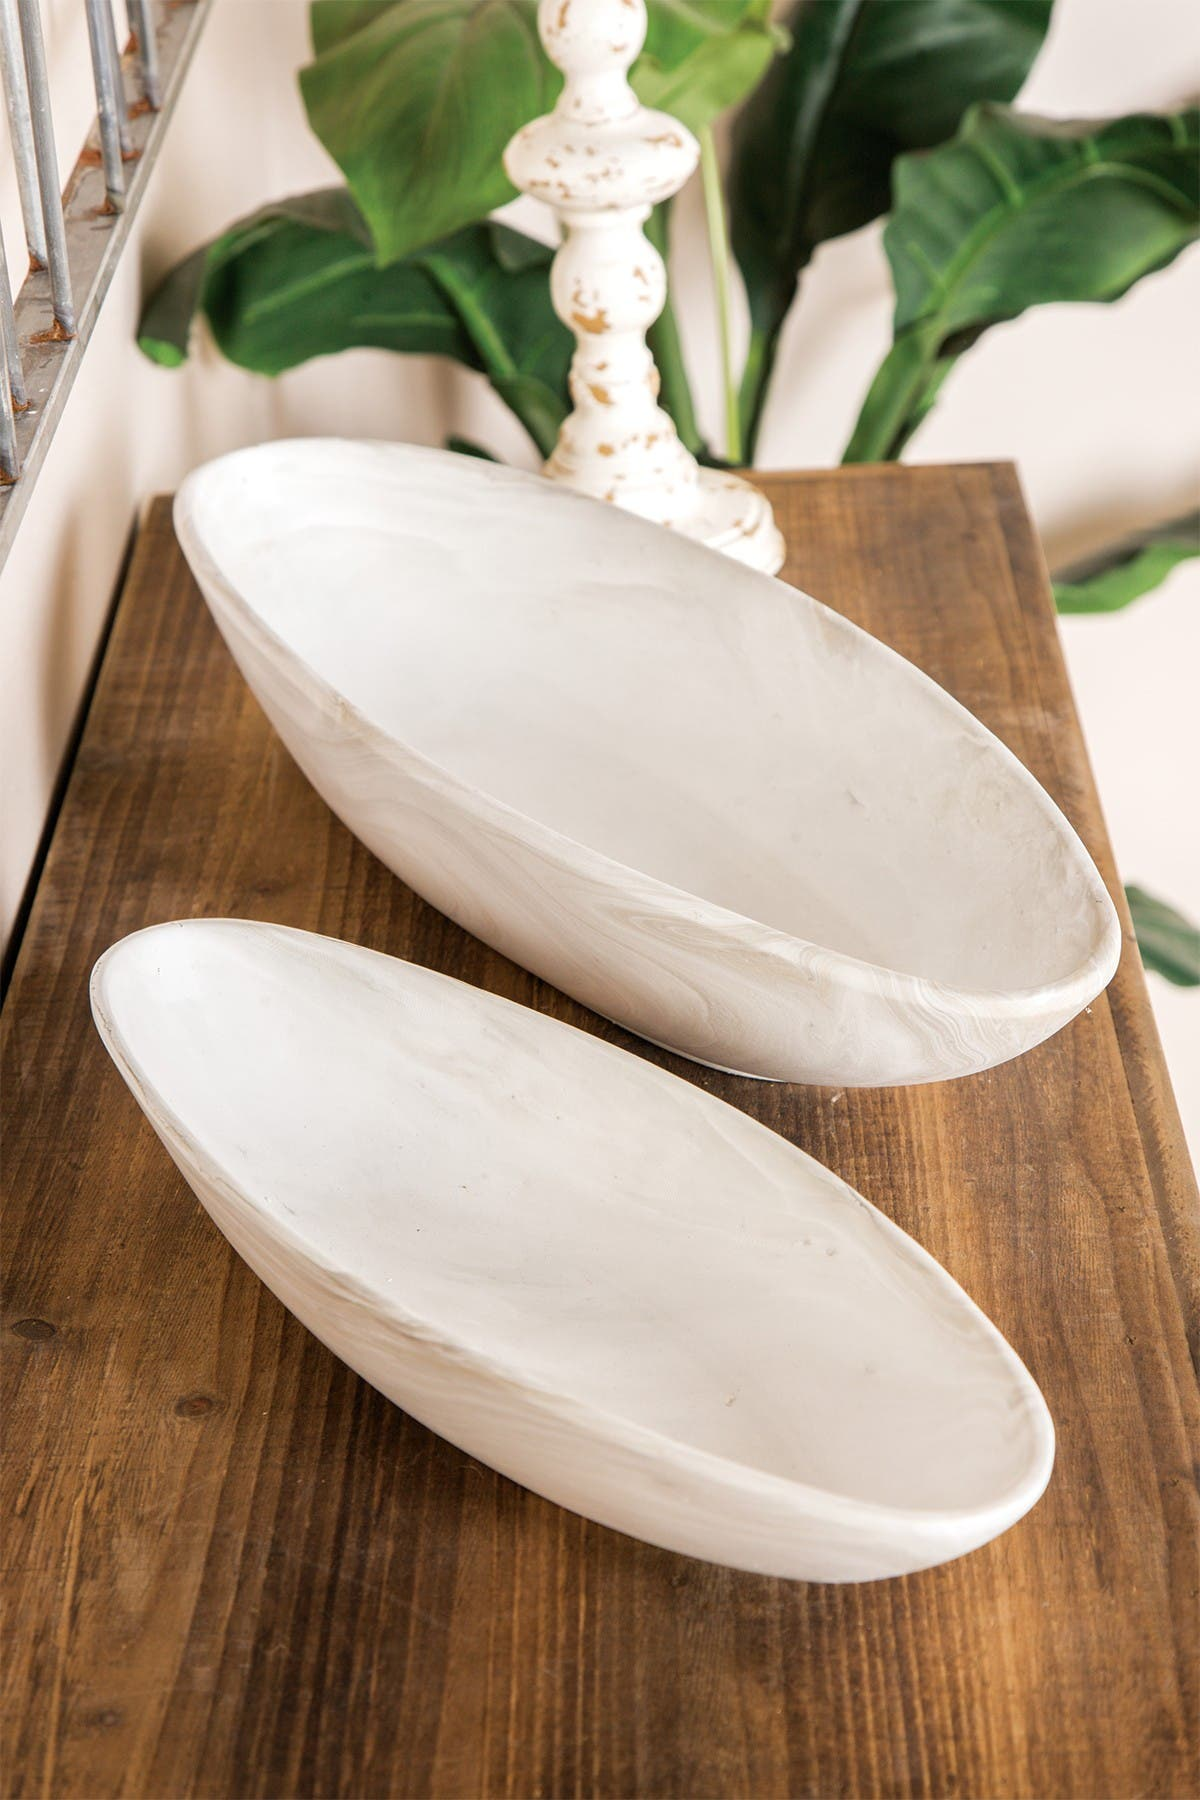 Image of CosmoLiving by Cosmopolitan Country Cottage Style White Marble Porcelain Indoor & Outdoor Planter Tray - Set of 2